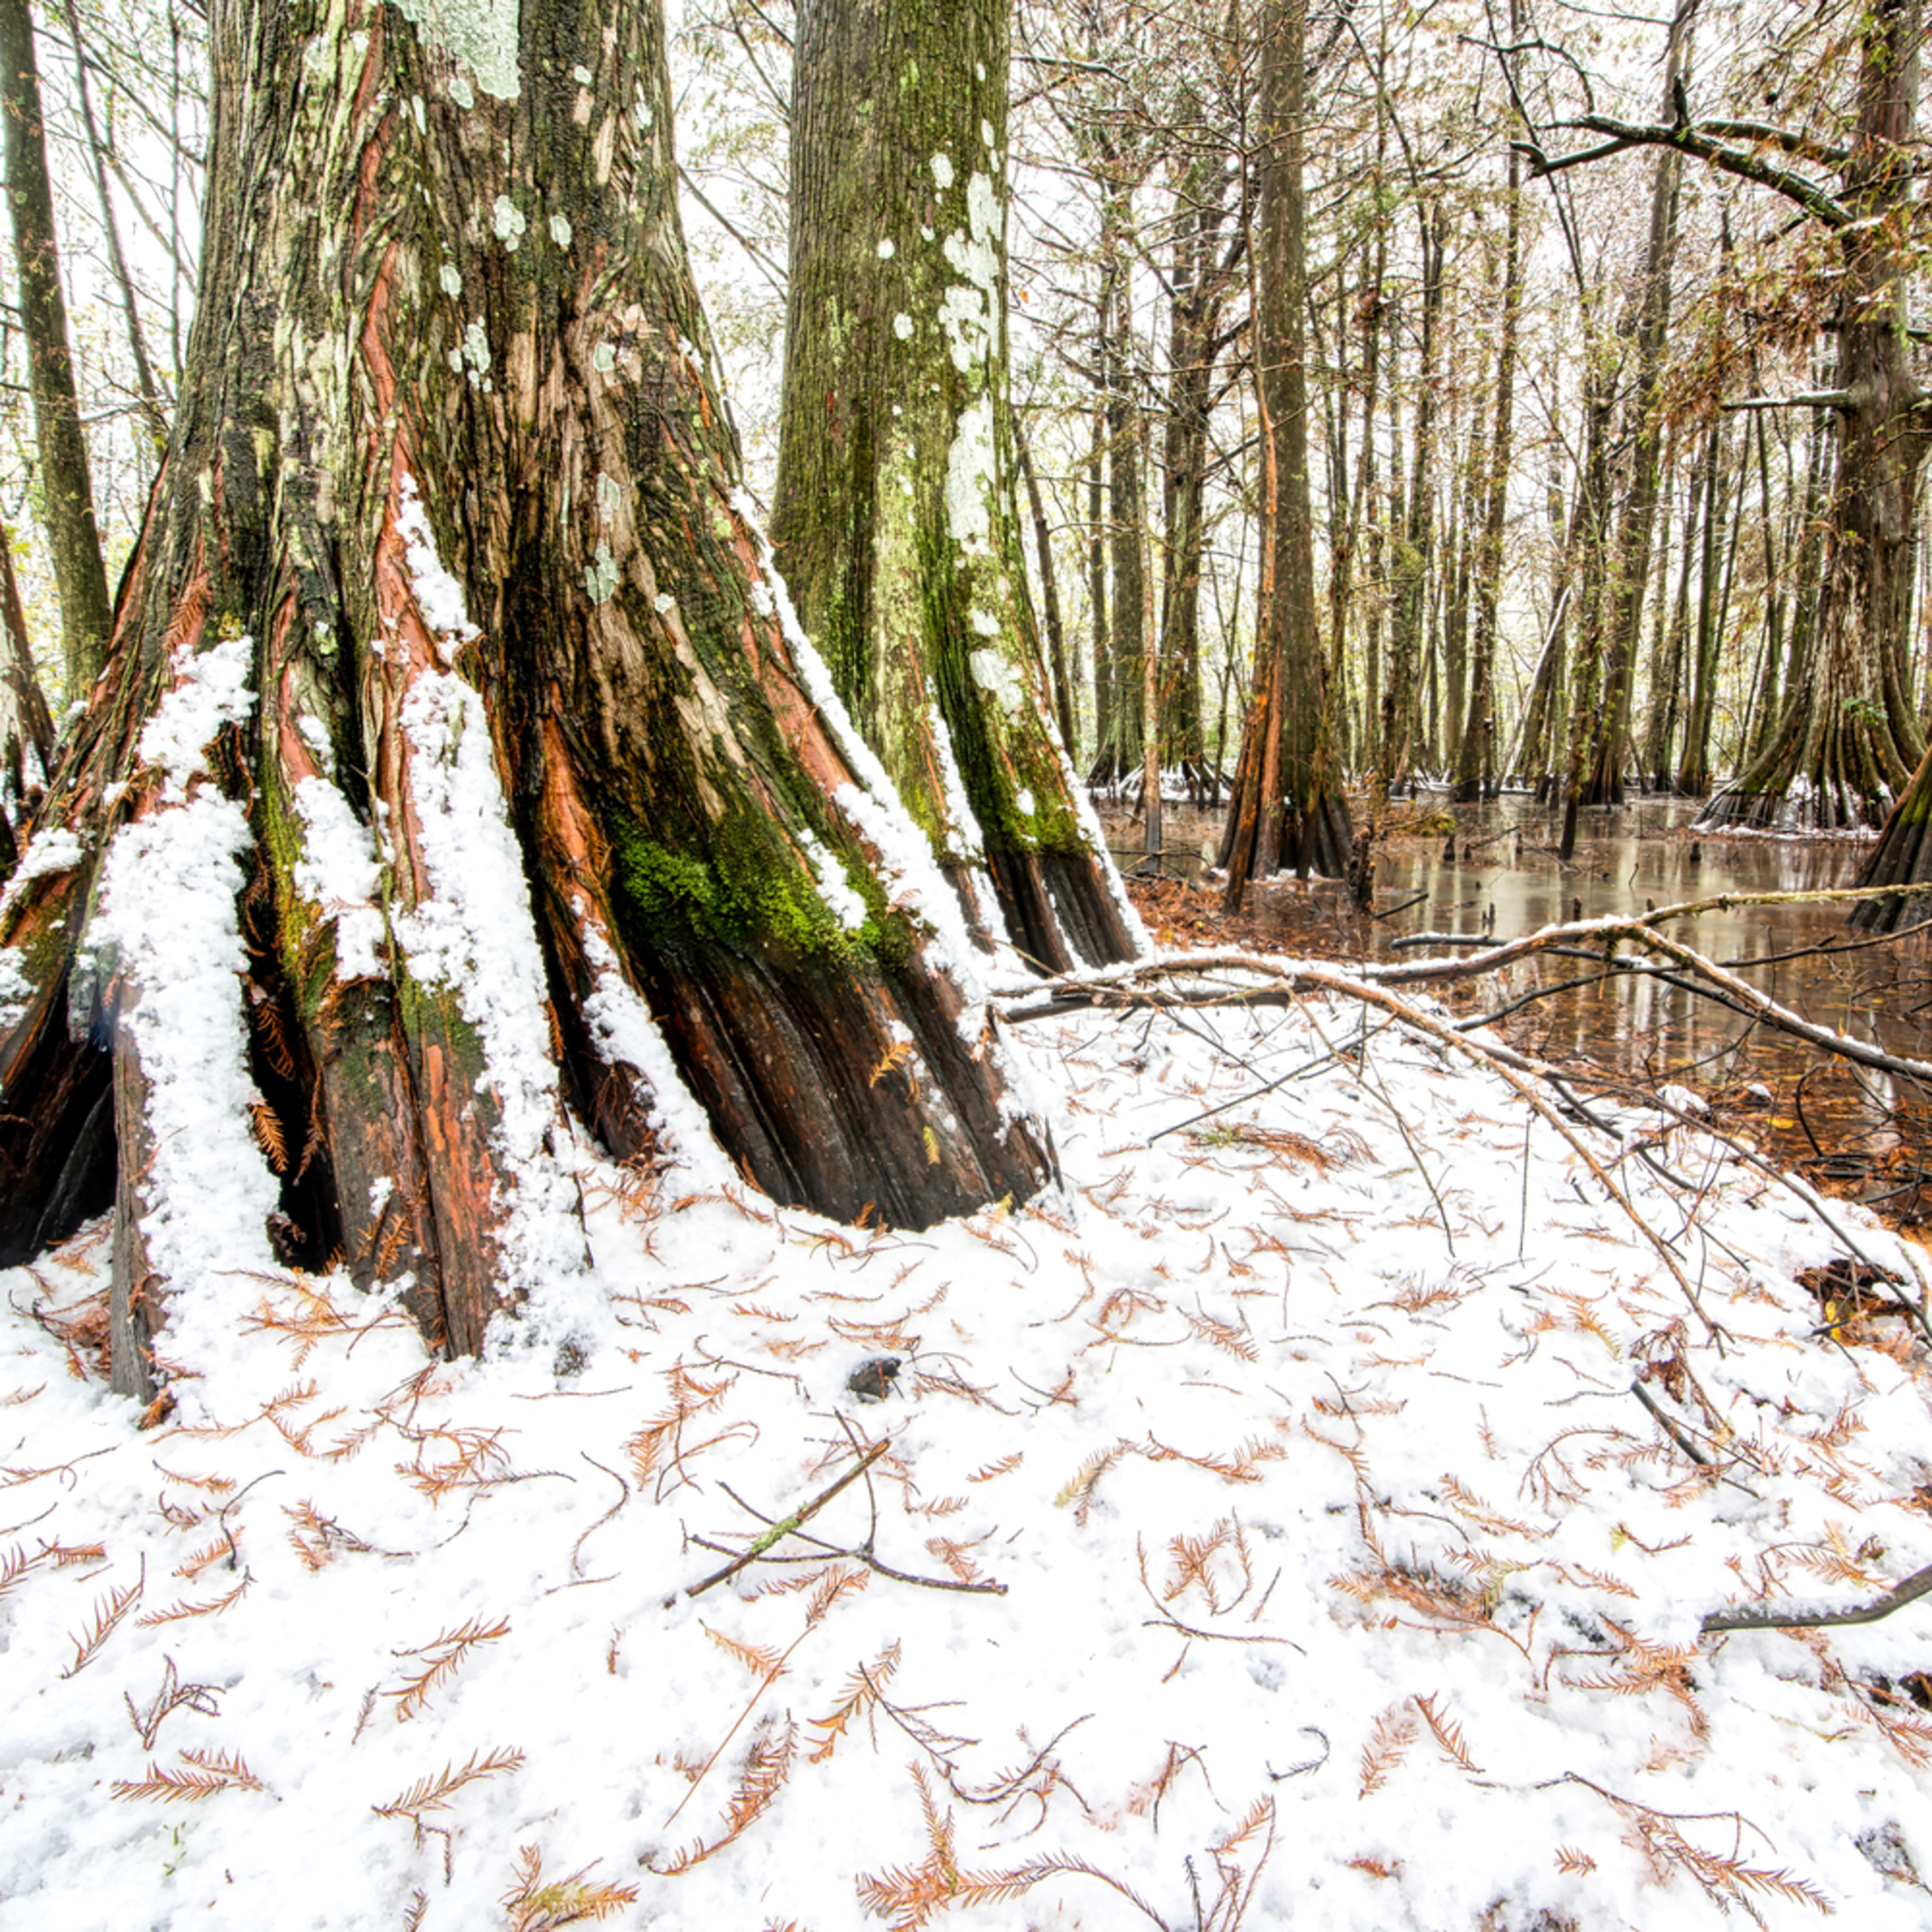 Andy crawford photography swamps 20171208 8 ftxttb